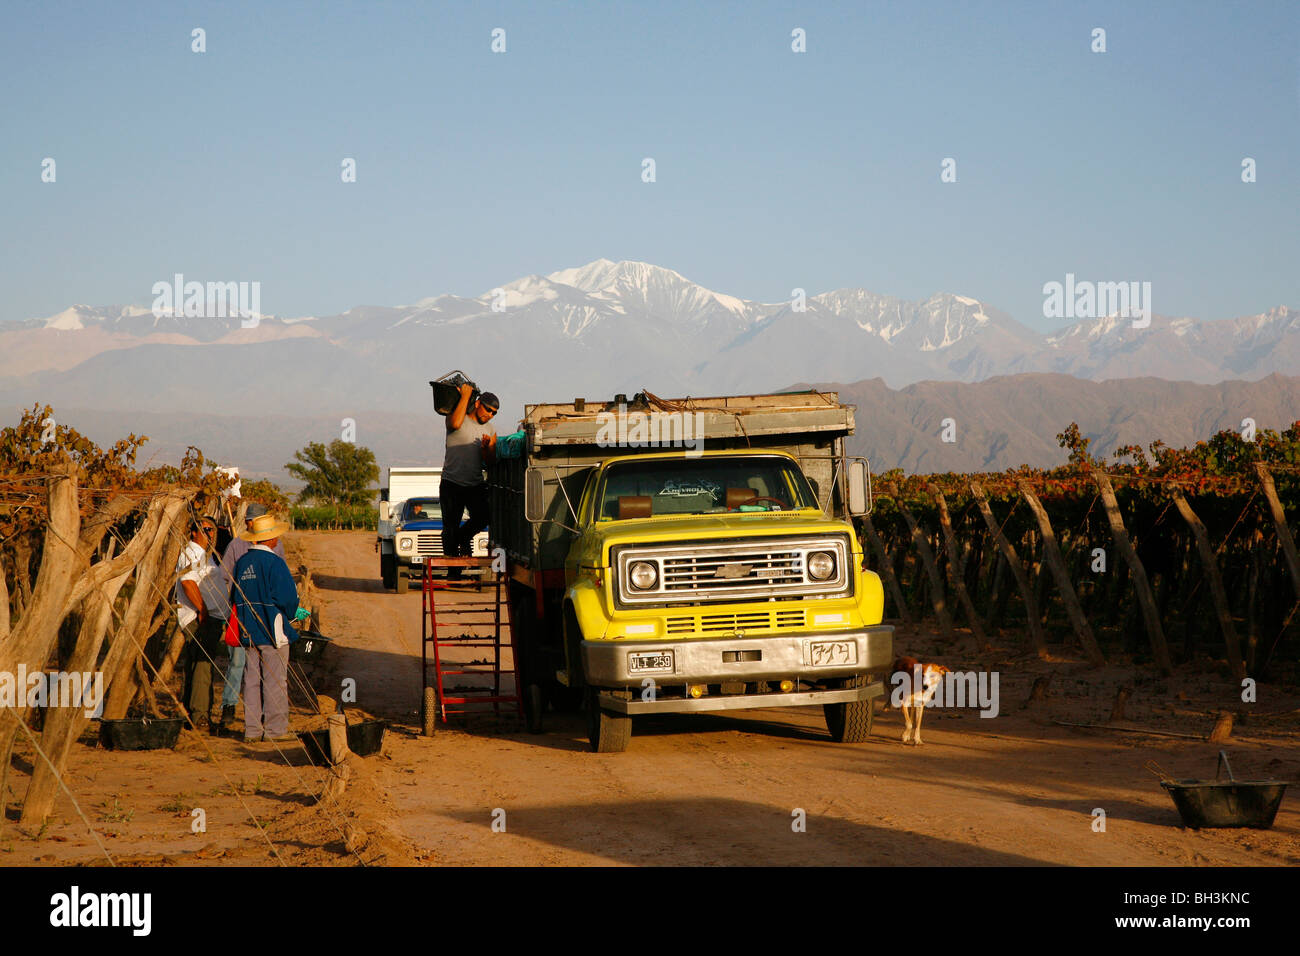 Grape harvest at a vineyard in Lujan de Cuyo with the Andes mountains in the background, Mendoza, Argentina. - Stock Image